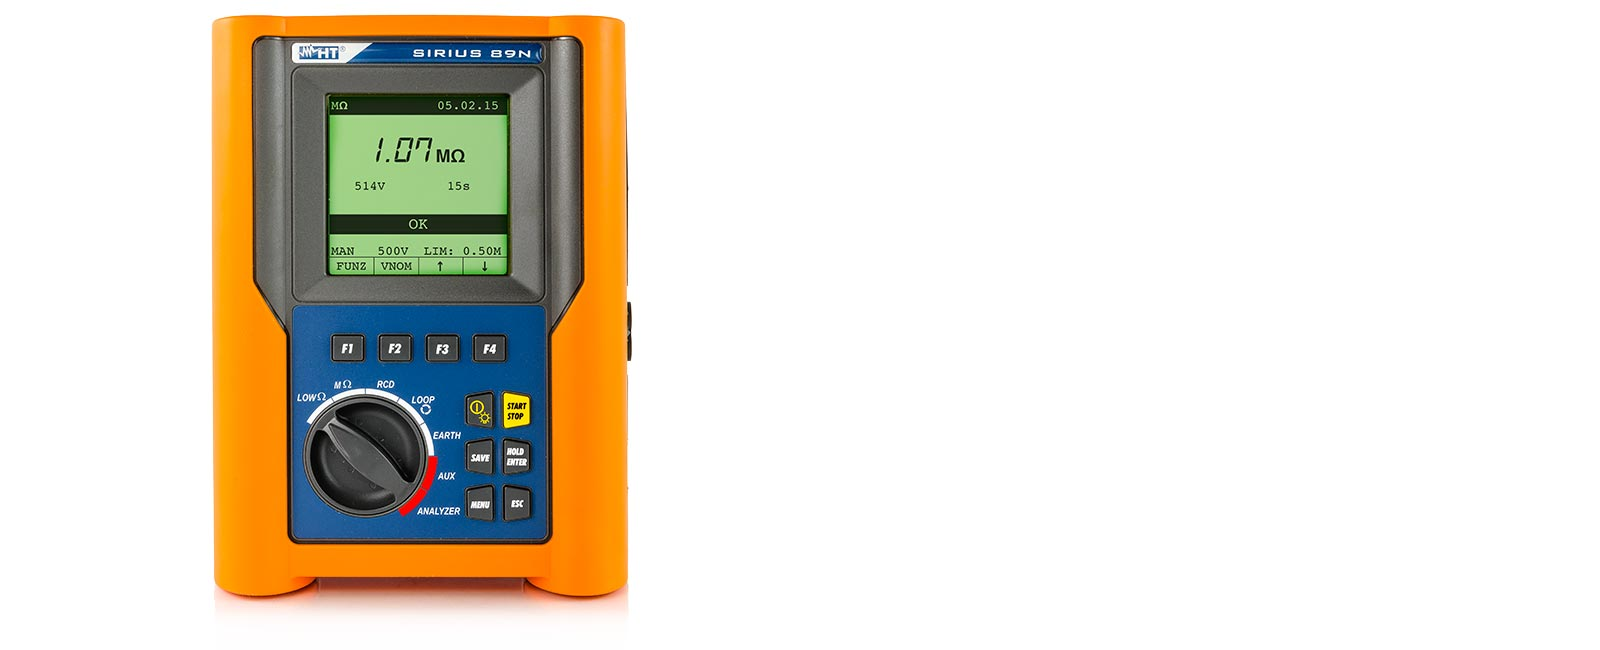 Multifunction installation tester for verification of electric safety and power quality analysis on single-phase installations